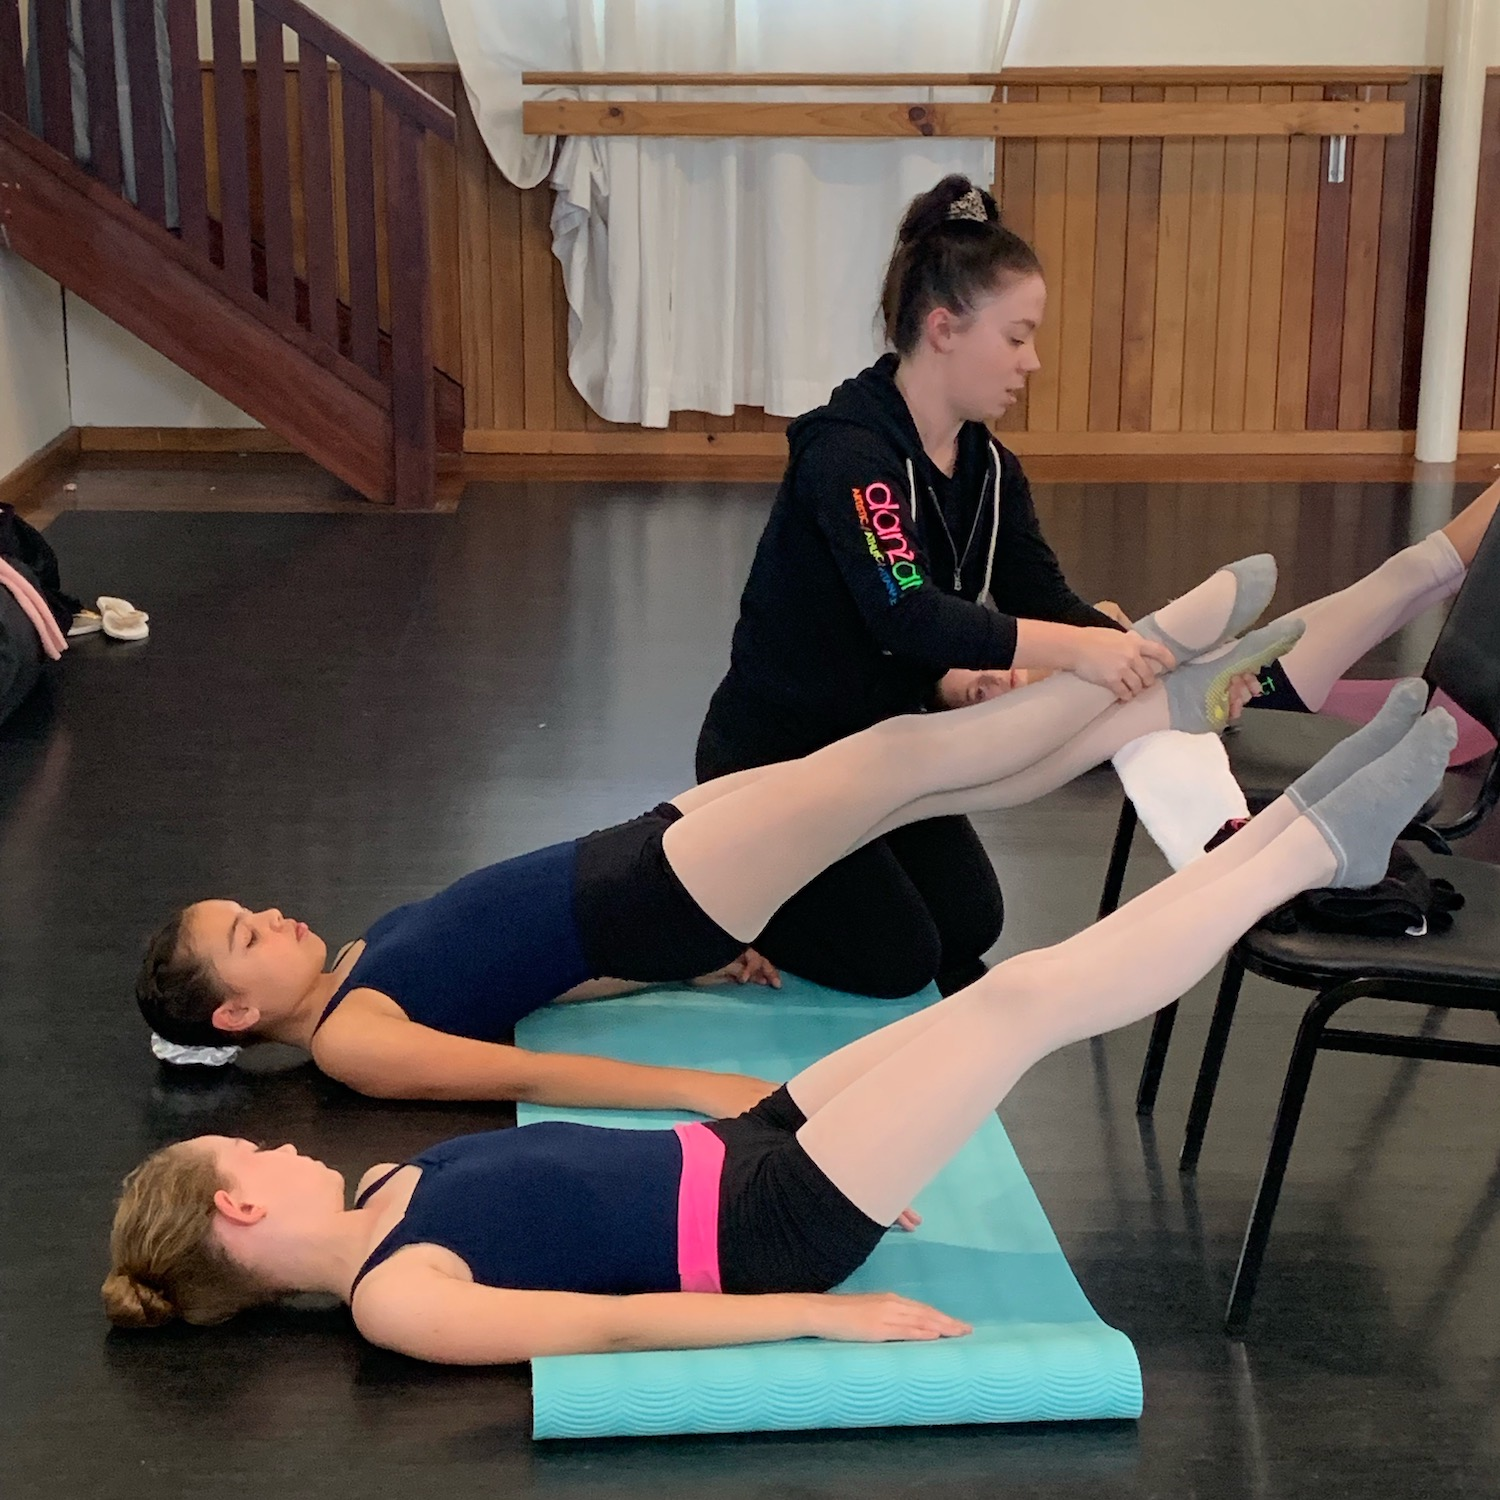 Expert technical dance training with highly-qualified dance teachers